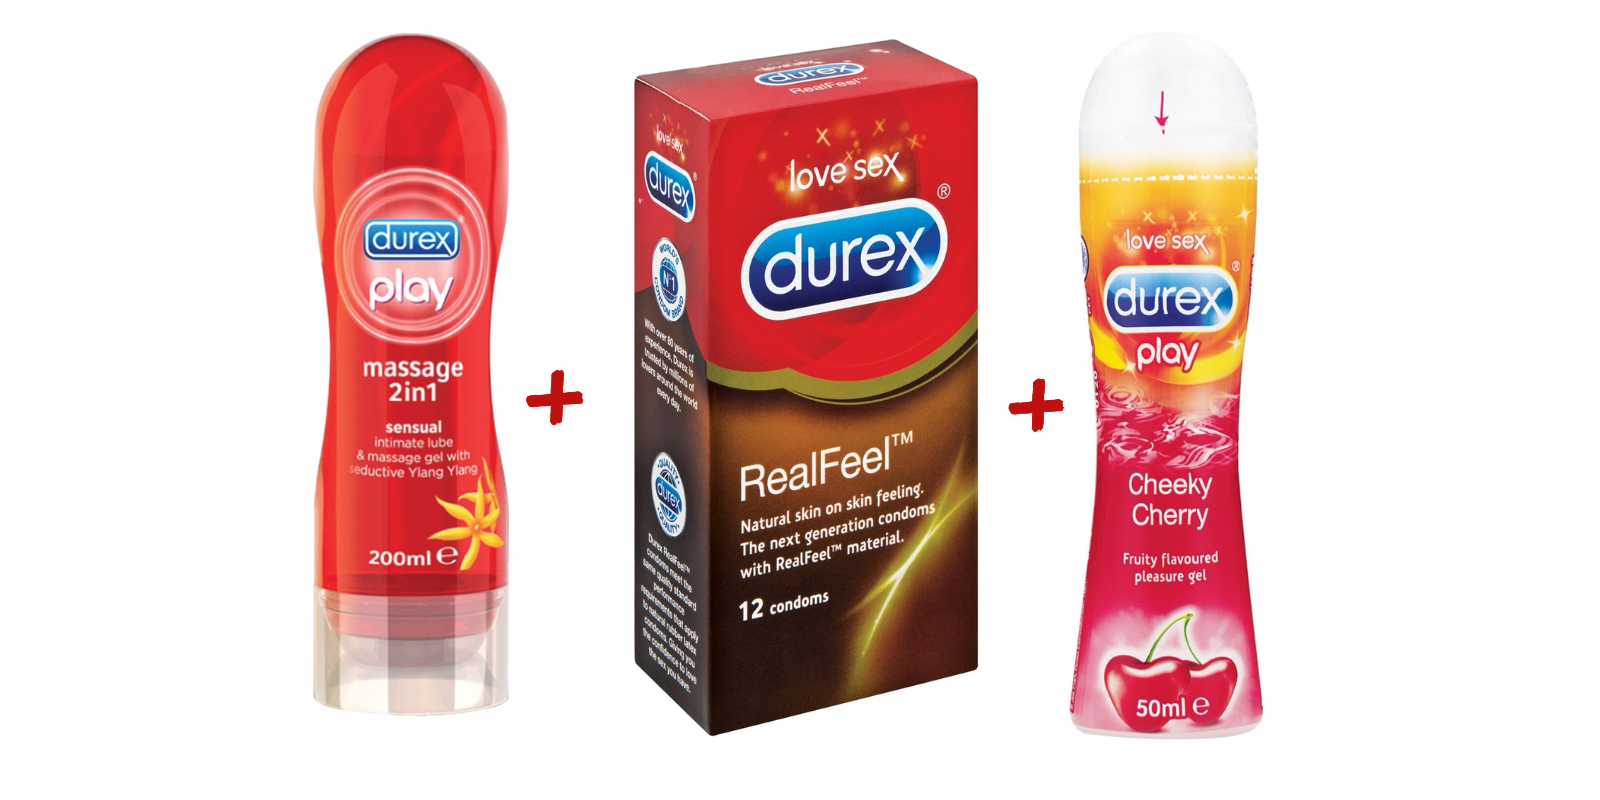 Durex Real Feel Lube And Gel Combo Store Cantomart Play Massage 2in1 Lubricant 200ml